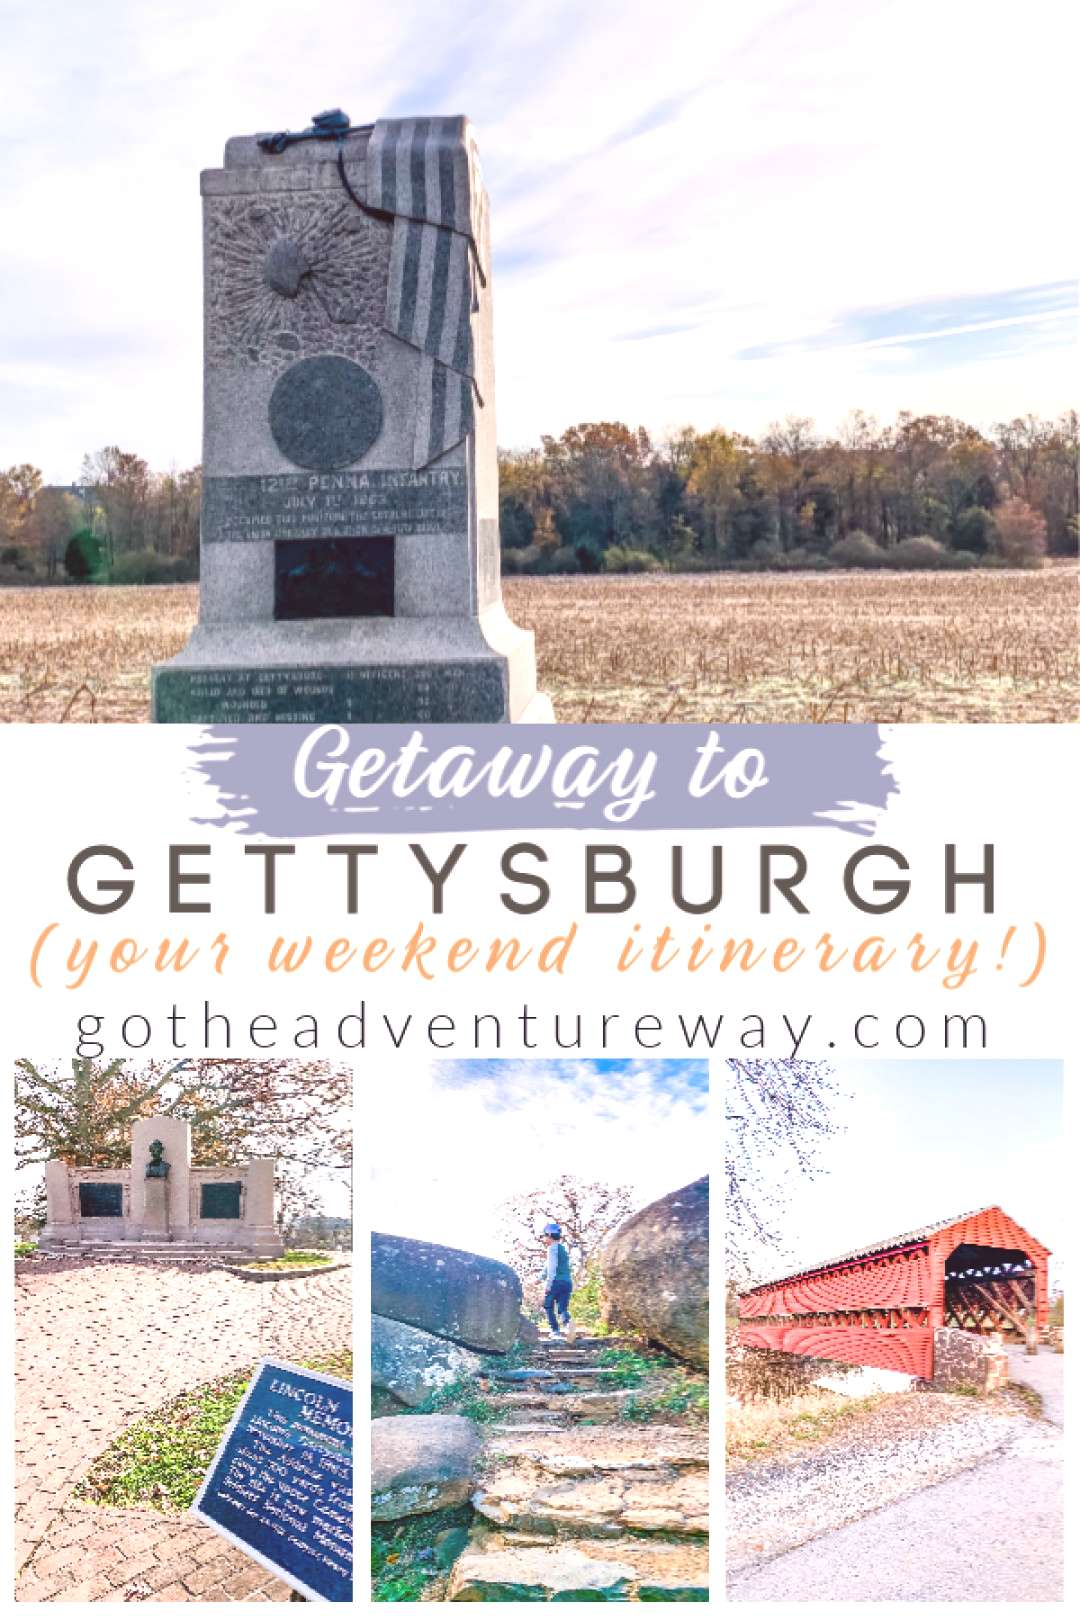 Getaway To Gettysburg - Go The Adventure Way Planning a trip to Gettysburg, PA? There is so much to